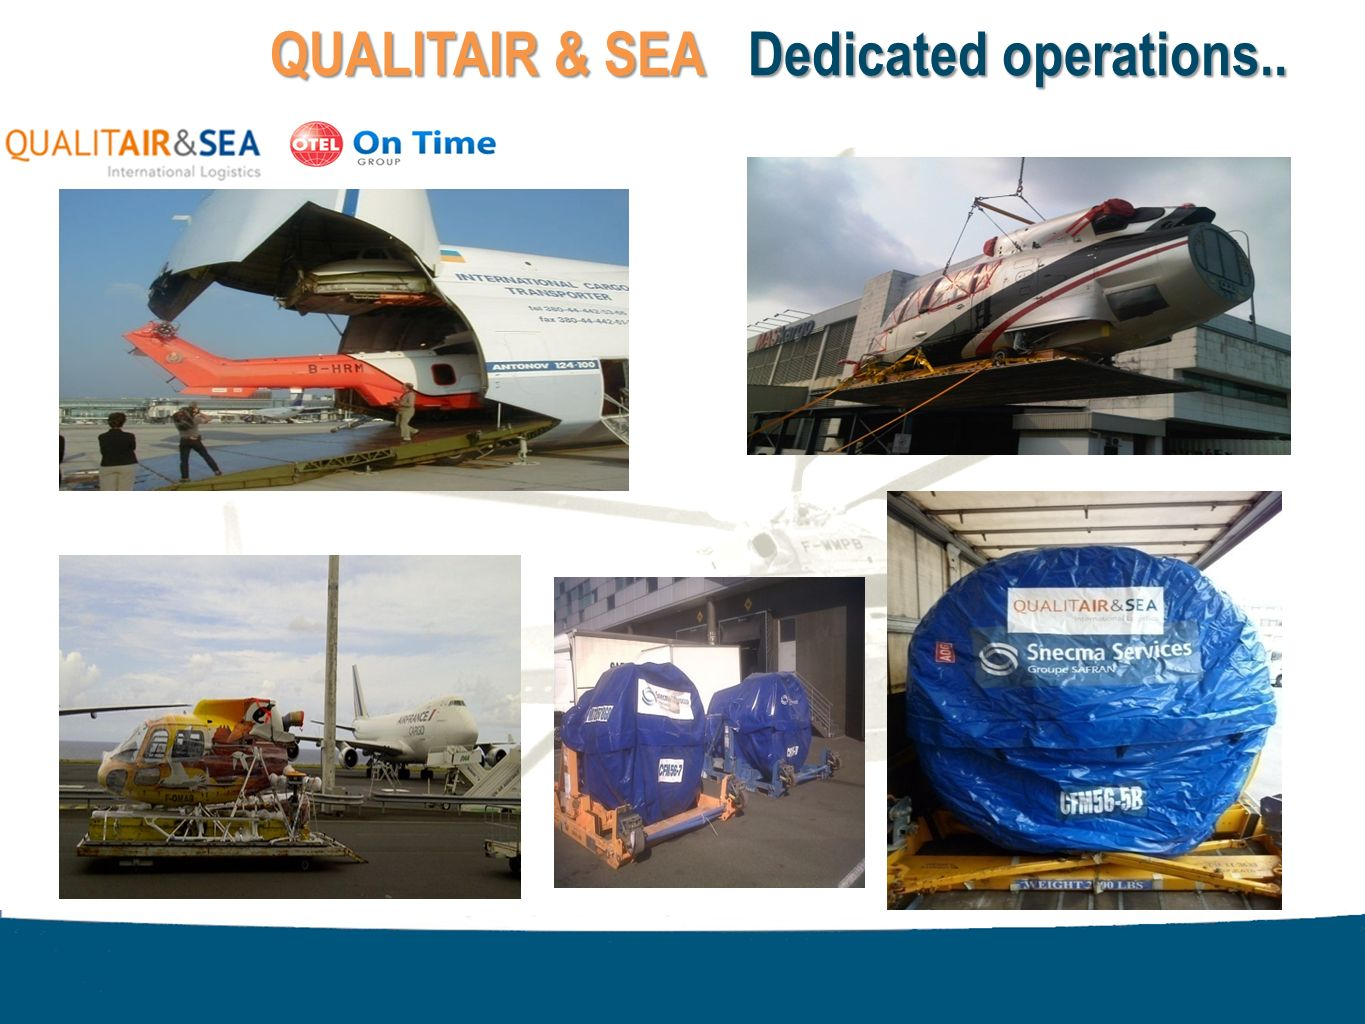 QUALITAIR & SEA Dedicated operations..